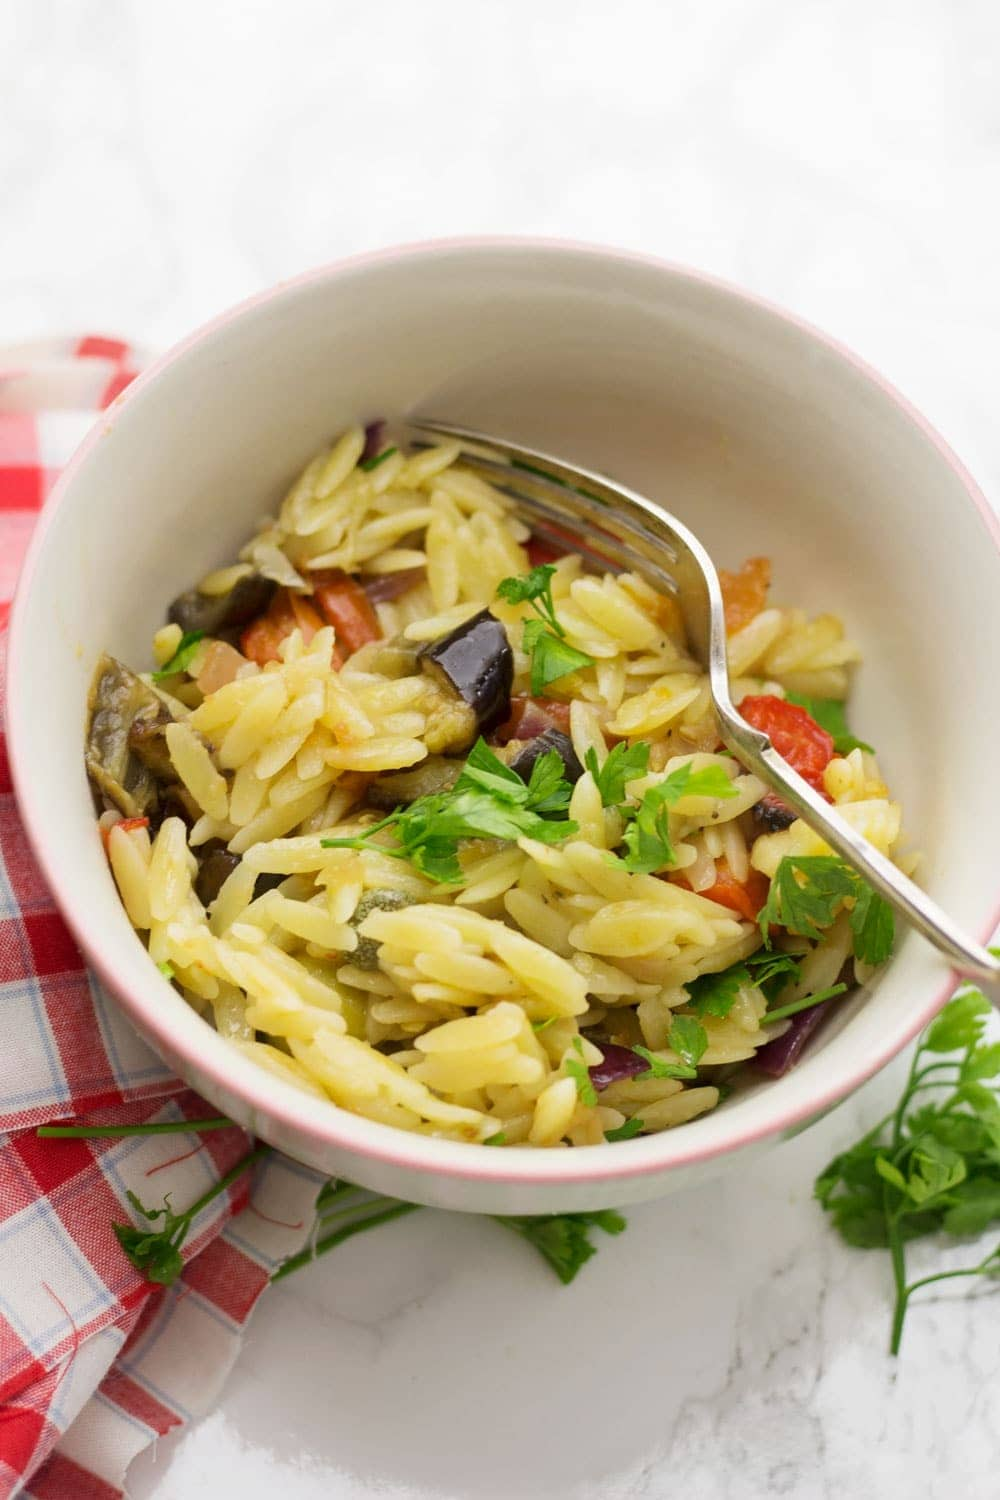 Summer Orzo Salad with Roasted Vegetables • The Cook Report